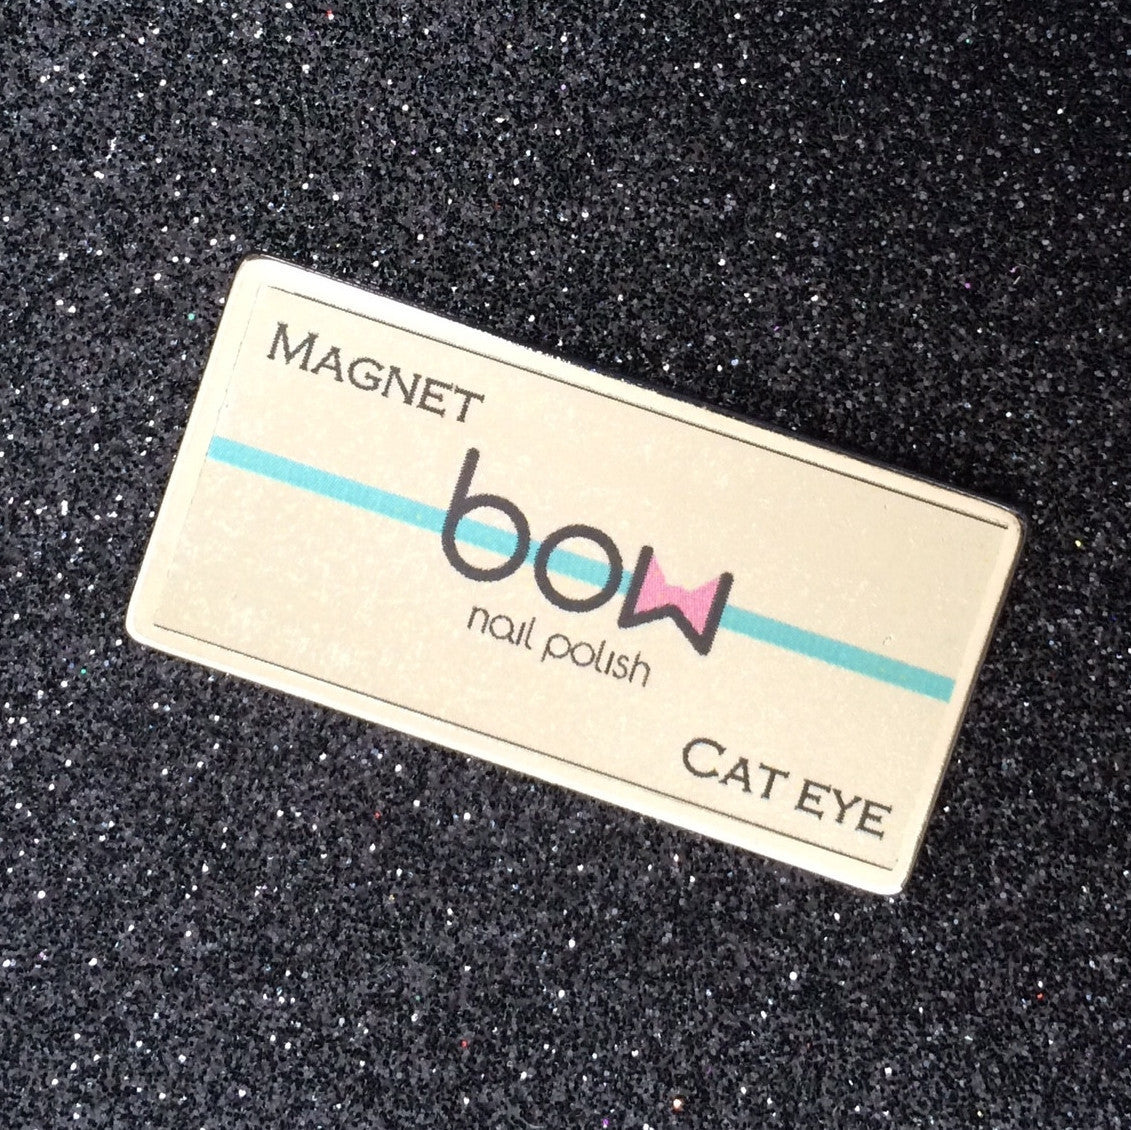 Bow Polish - Cat Eye Magnet